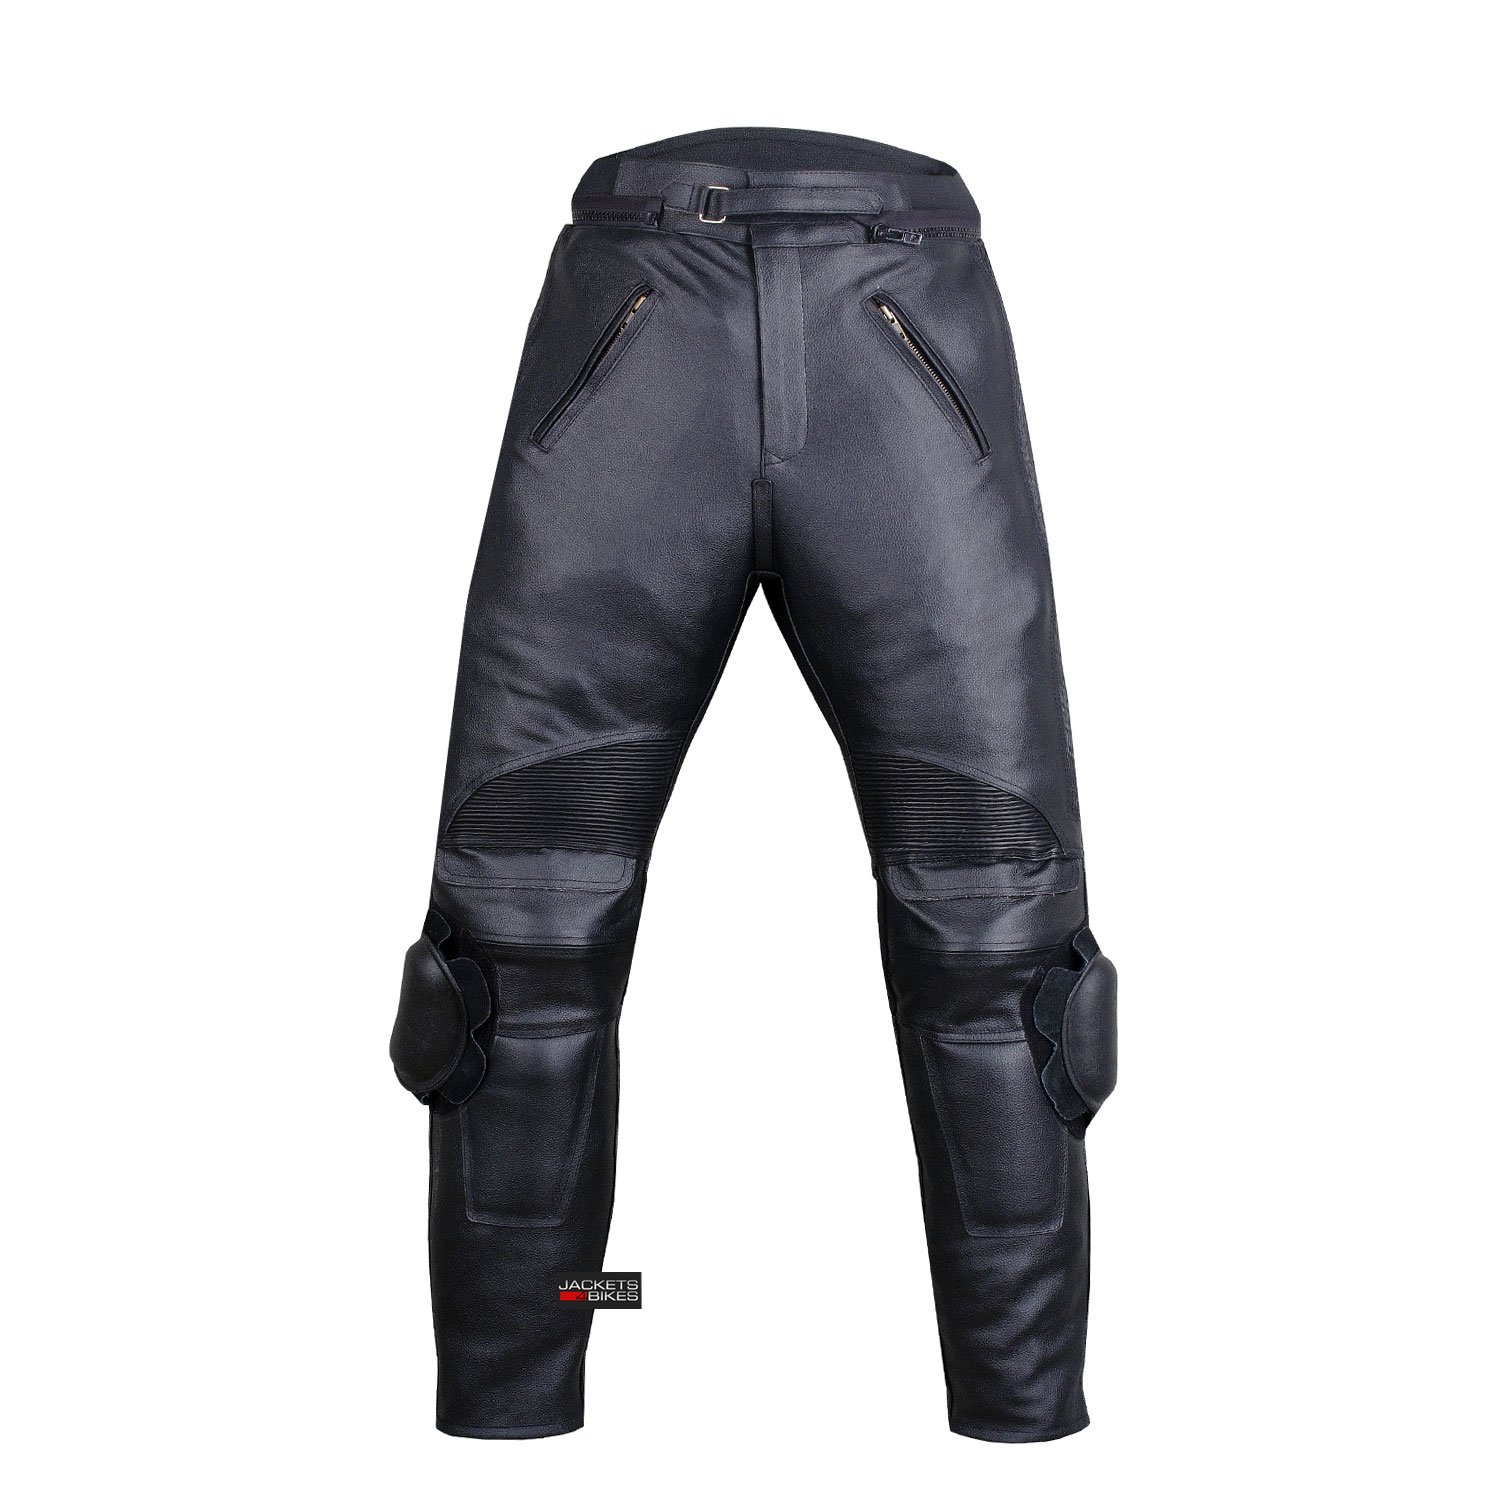 Men's Racing Motorcycle Leather Black Pants w/Sliders & 4PC CE Armor 36w 30i by Jackets 4 Bikes